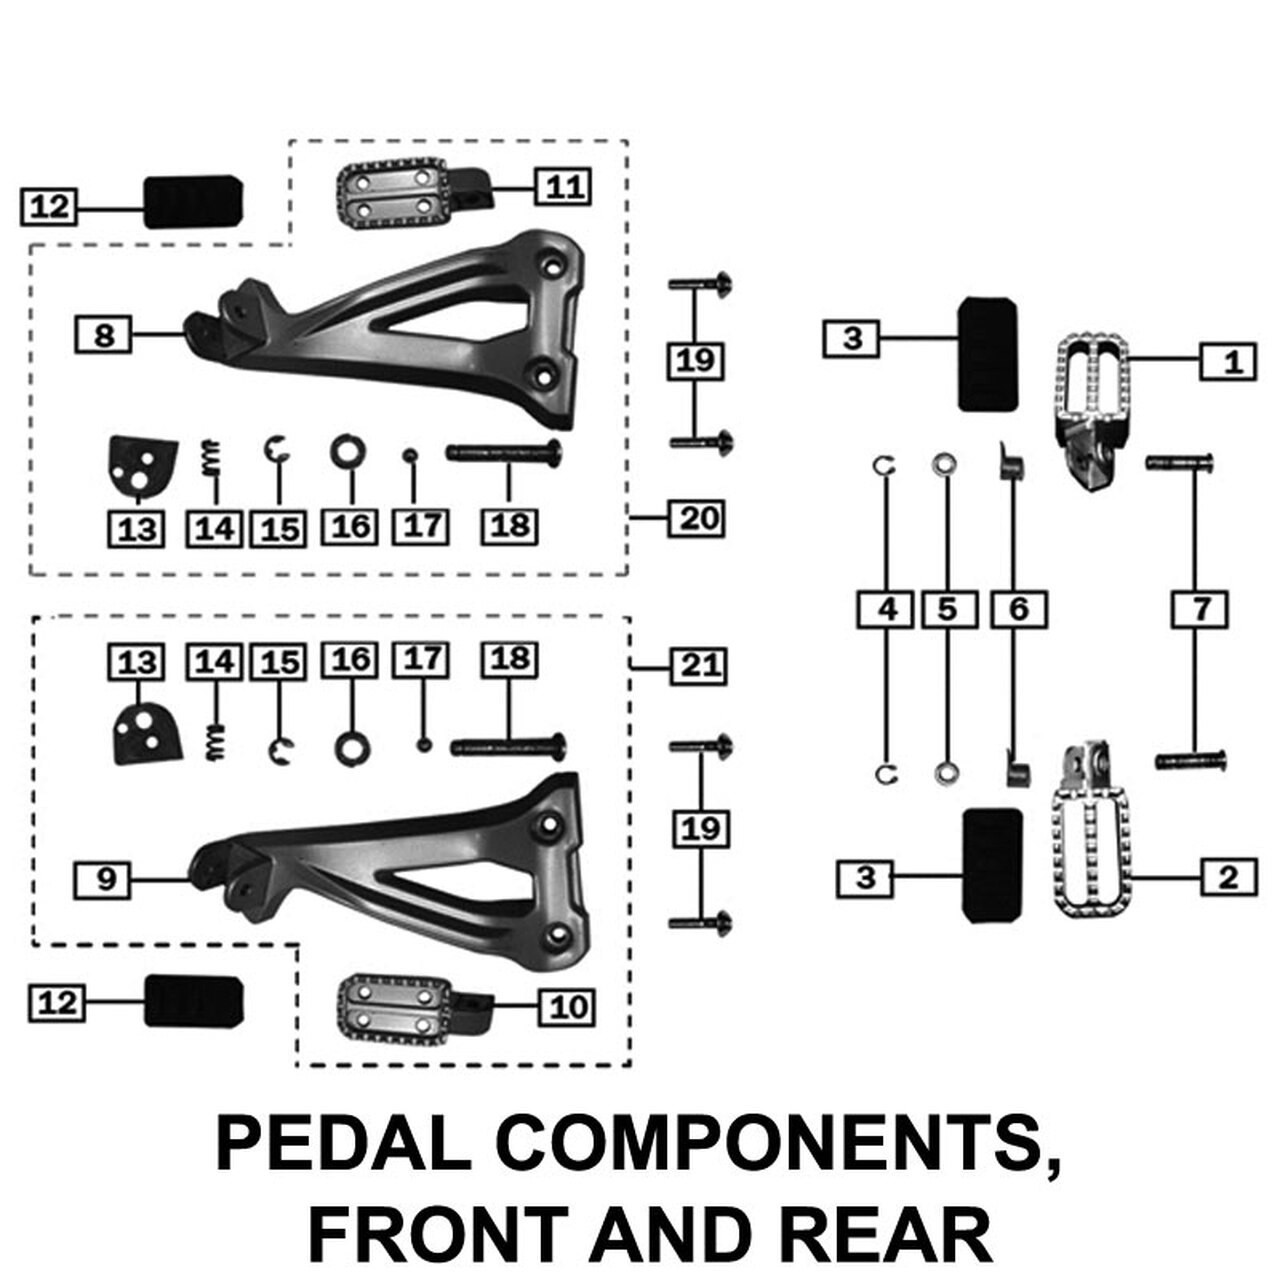 FOOT PEGS, FRONT AND REAR